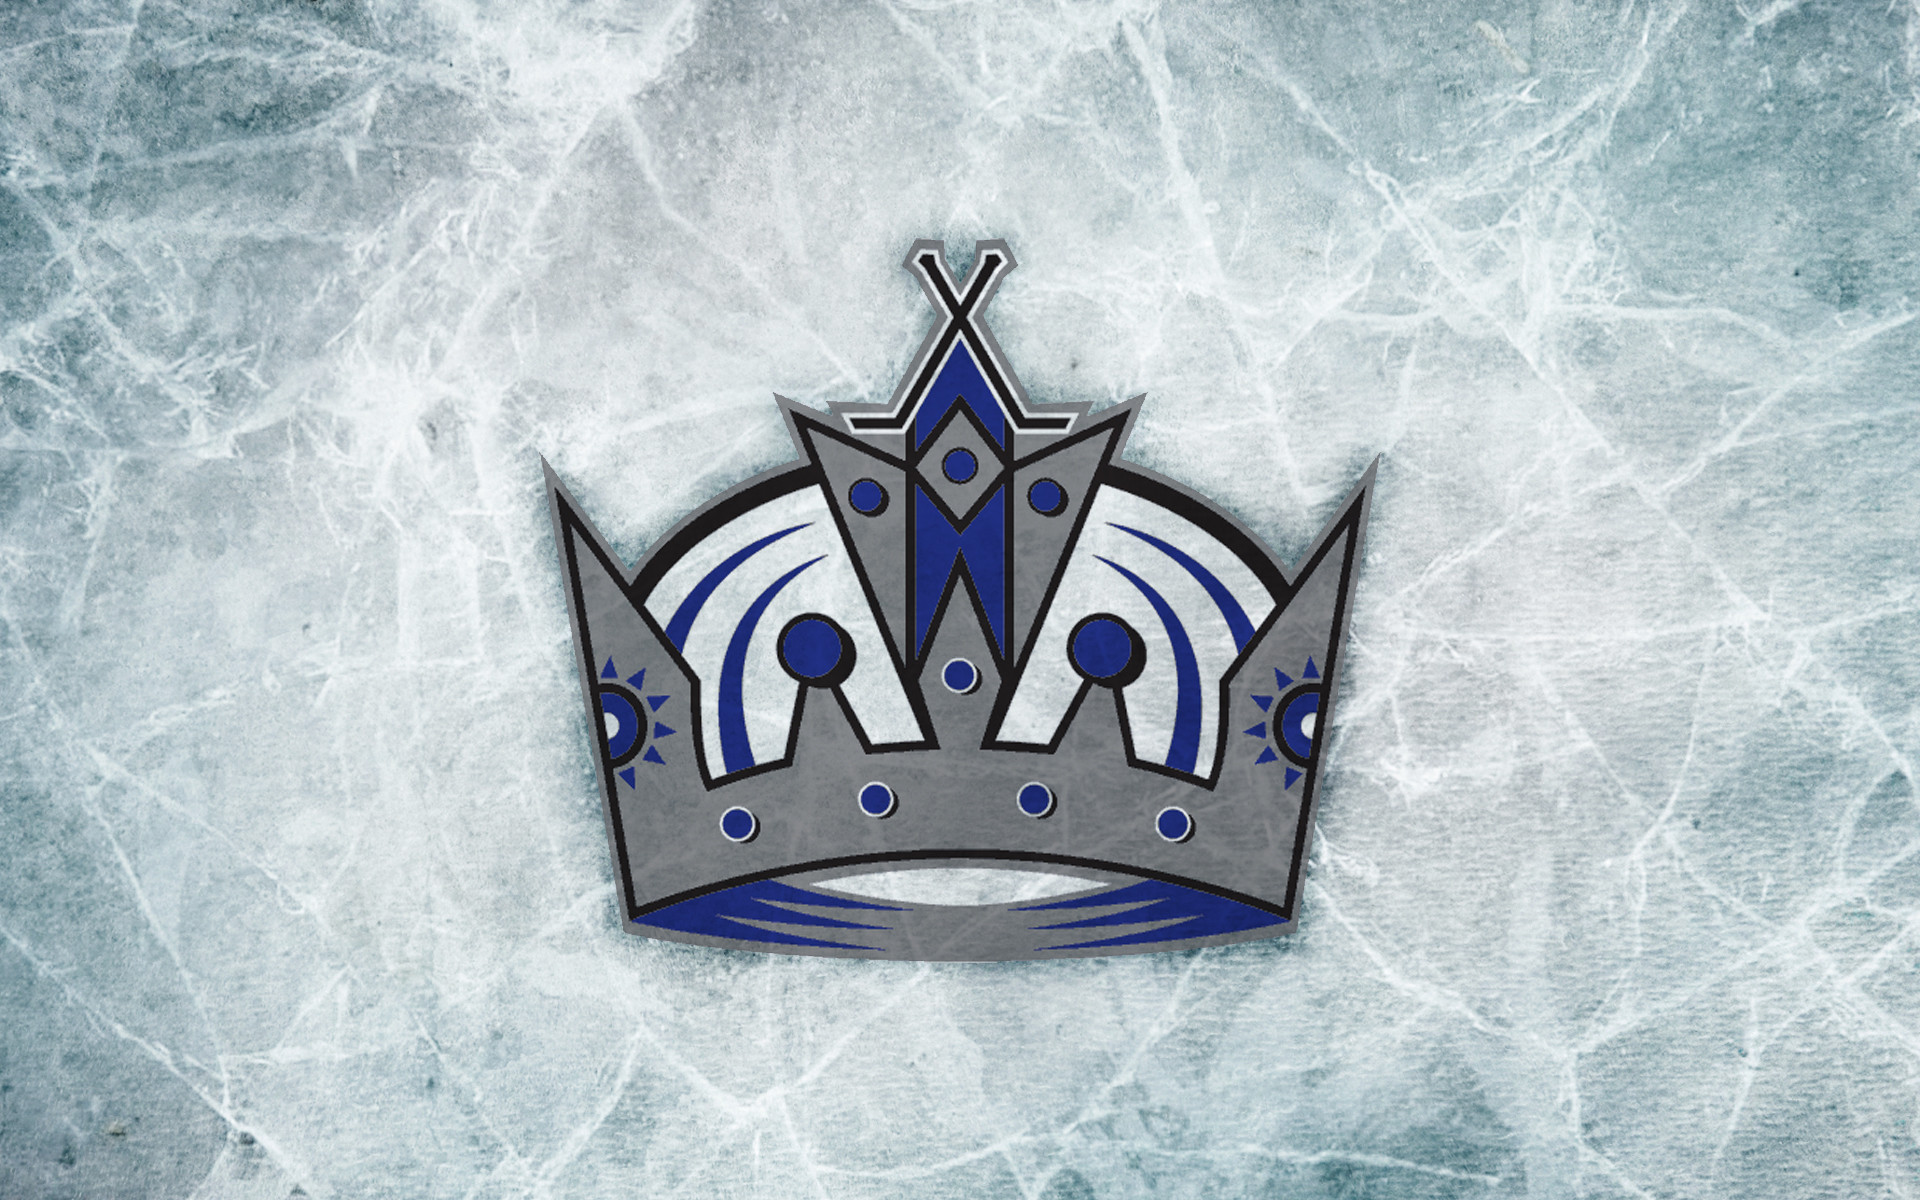 1920x1200 la kings wallpaper 20015